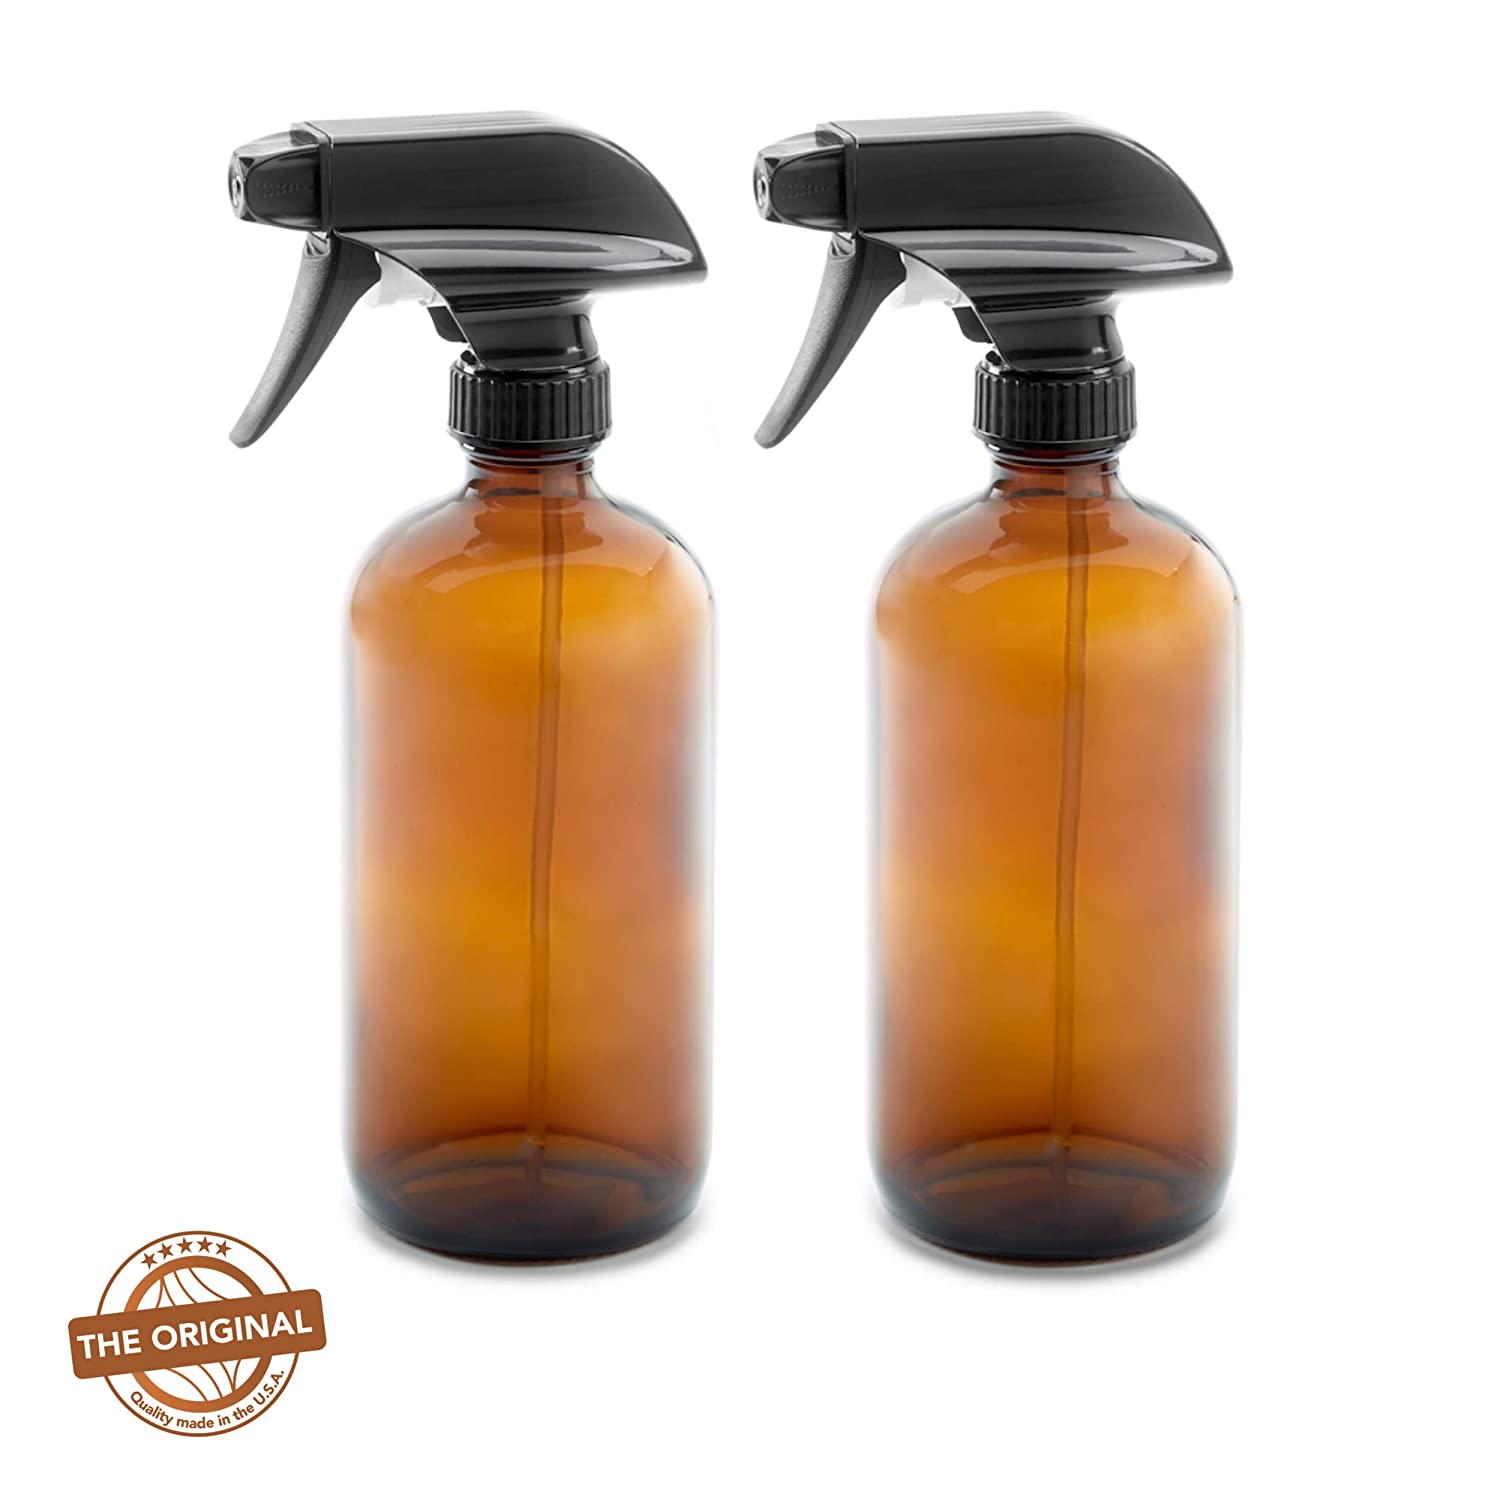 EMPTY AMBER DARK BROWN GLASS SPRAY BOTTLES w/Labels and Caps - (2 Pack) - 16oz / 500ML Empty - Mist & Stream Trigger Sprayer - BPA Free - Boston Round Heavy Duty Bottle for Essential Oils, Cleaning, Kitchen and Hair The Household Factory